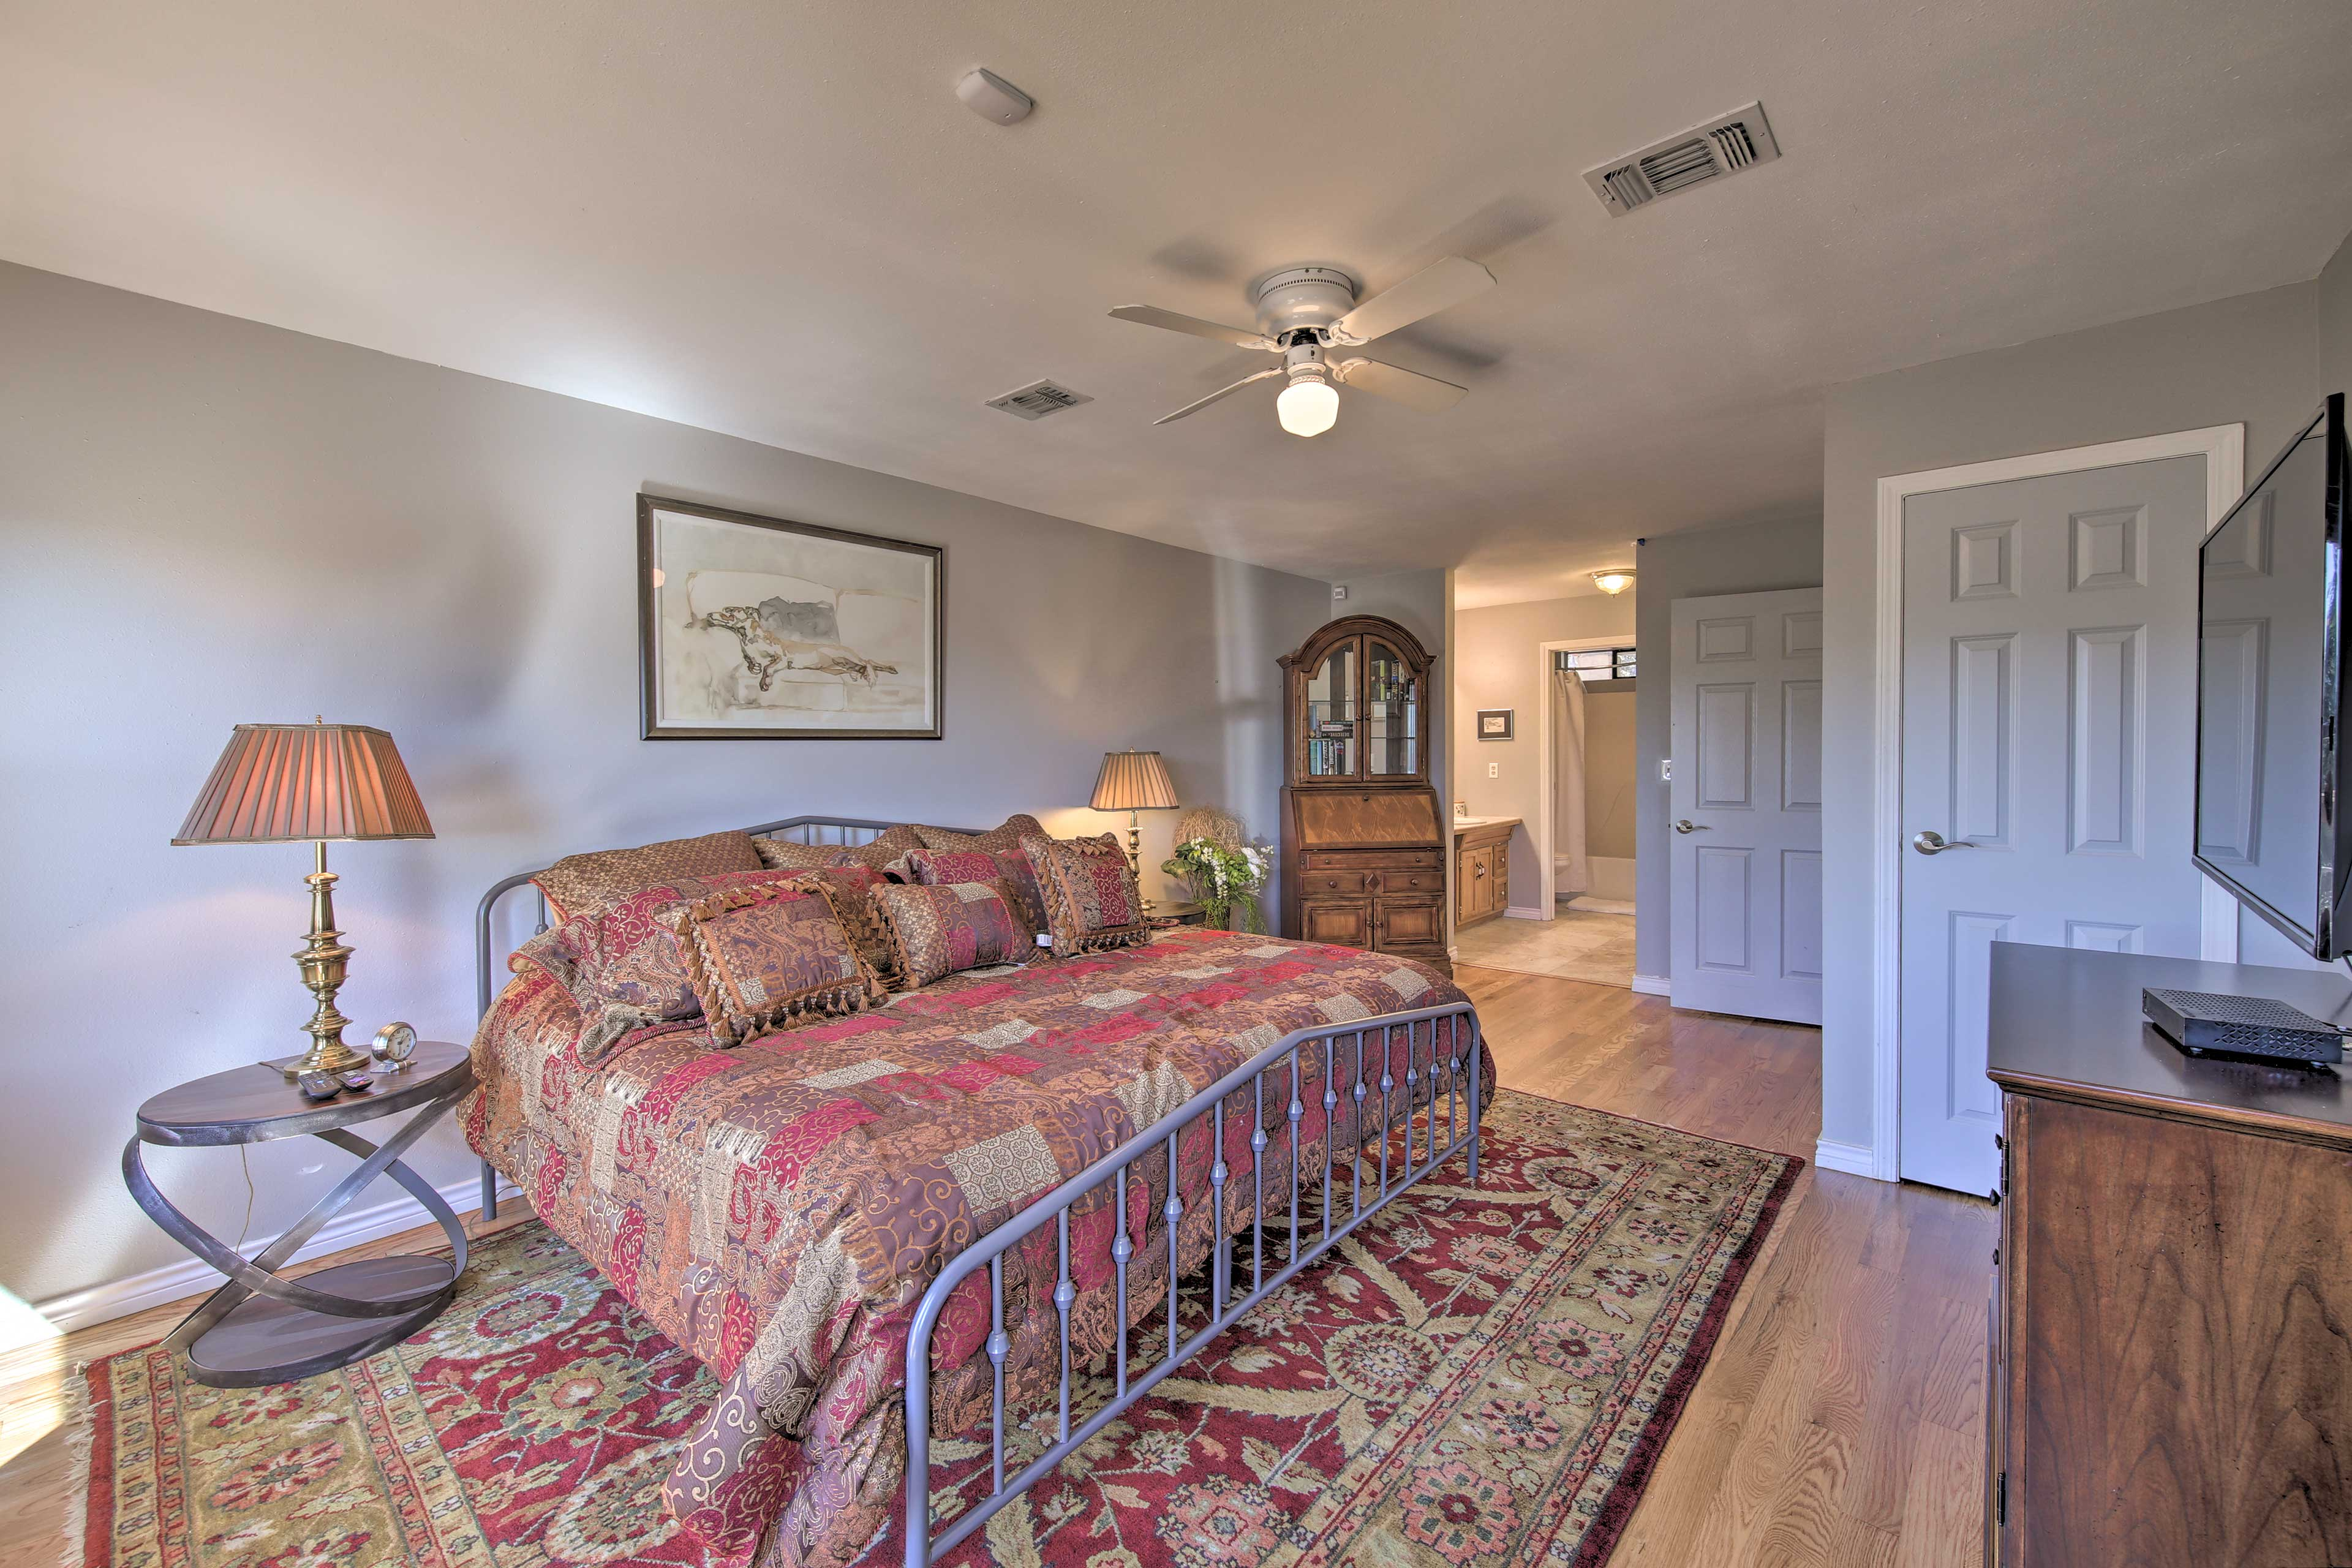 The second master bedroom has a king-sized bed.